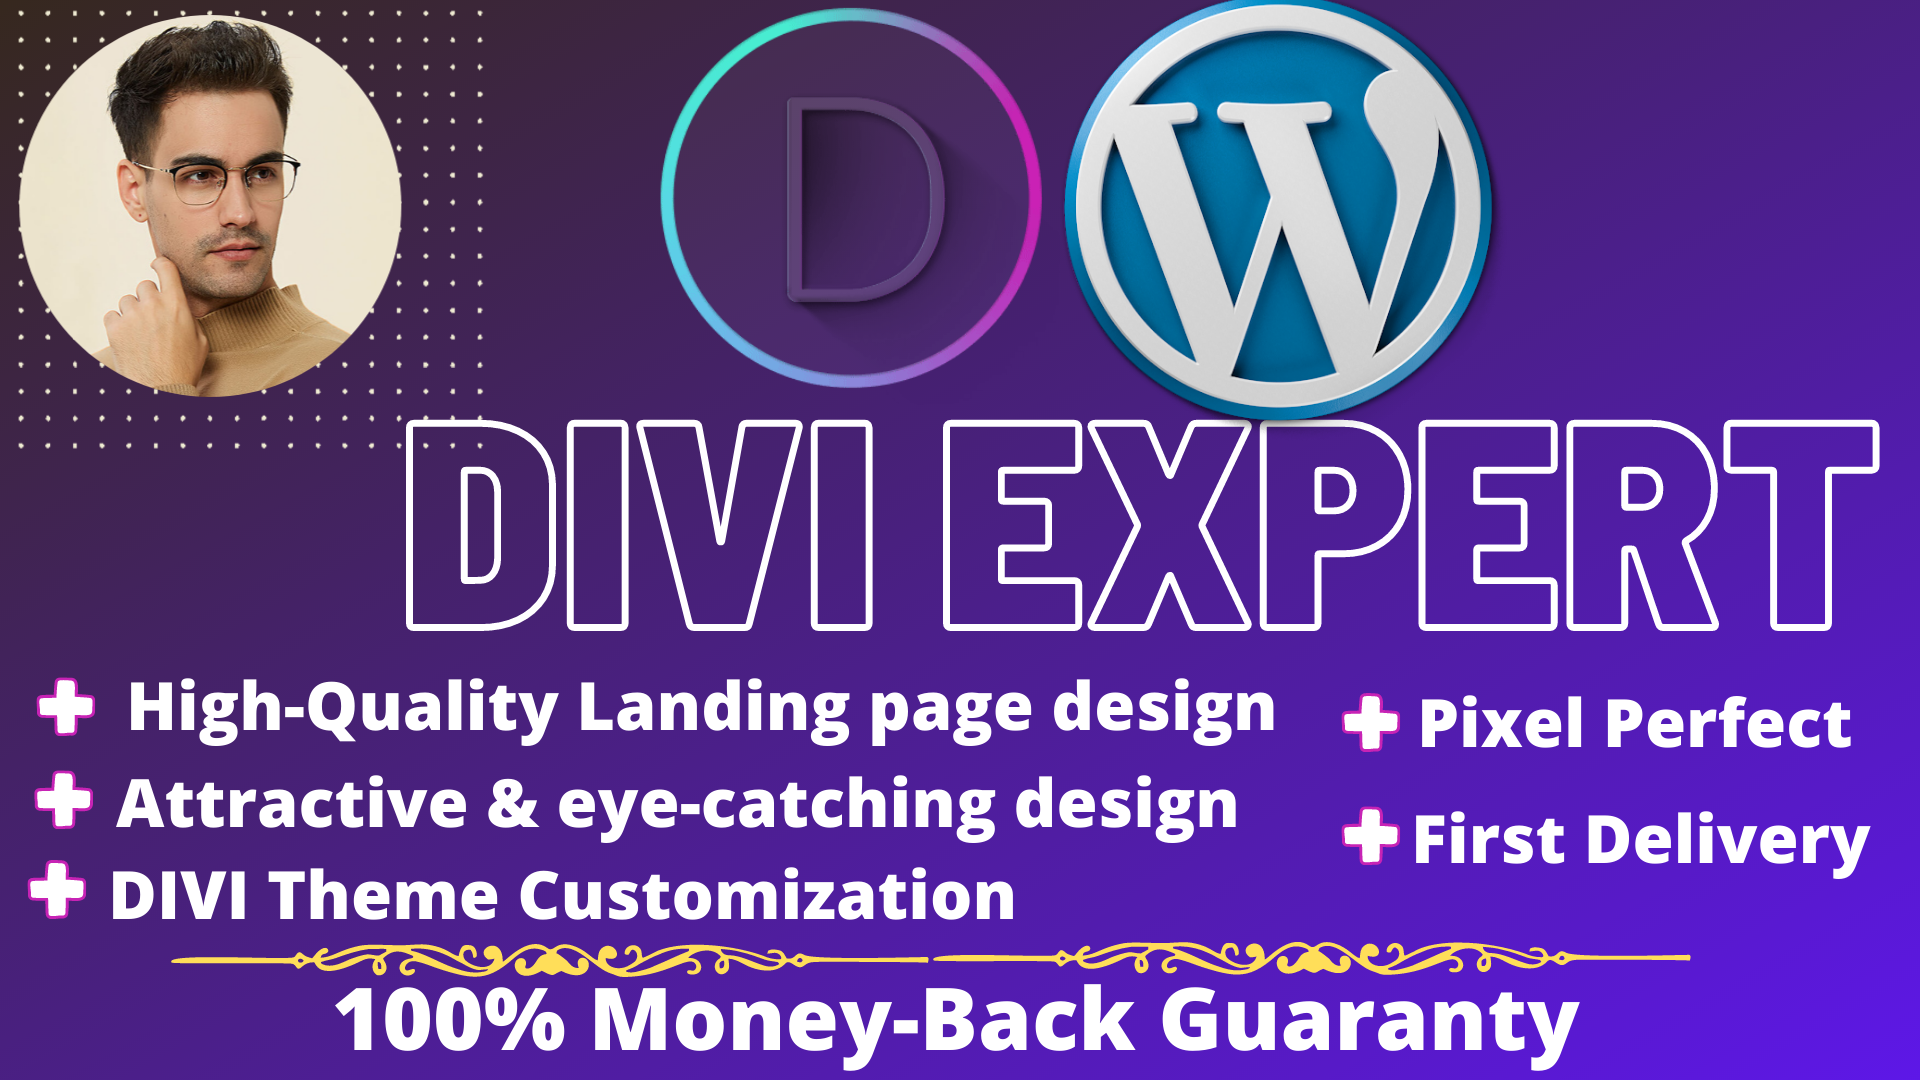 I will make high quality landing page with divi in 24 hours